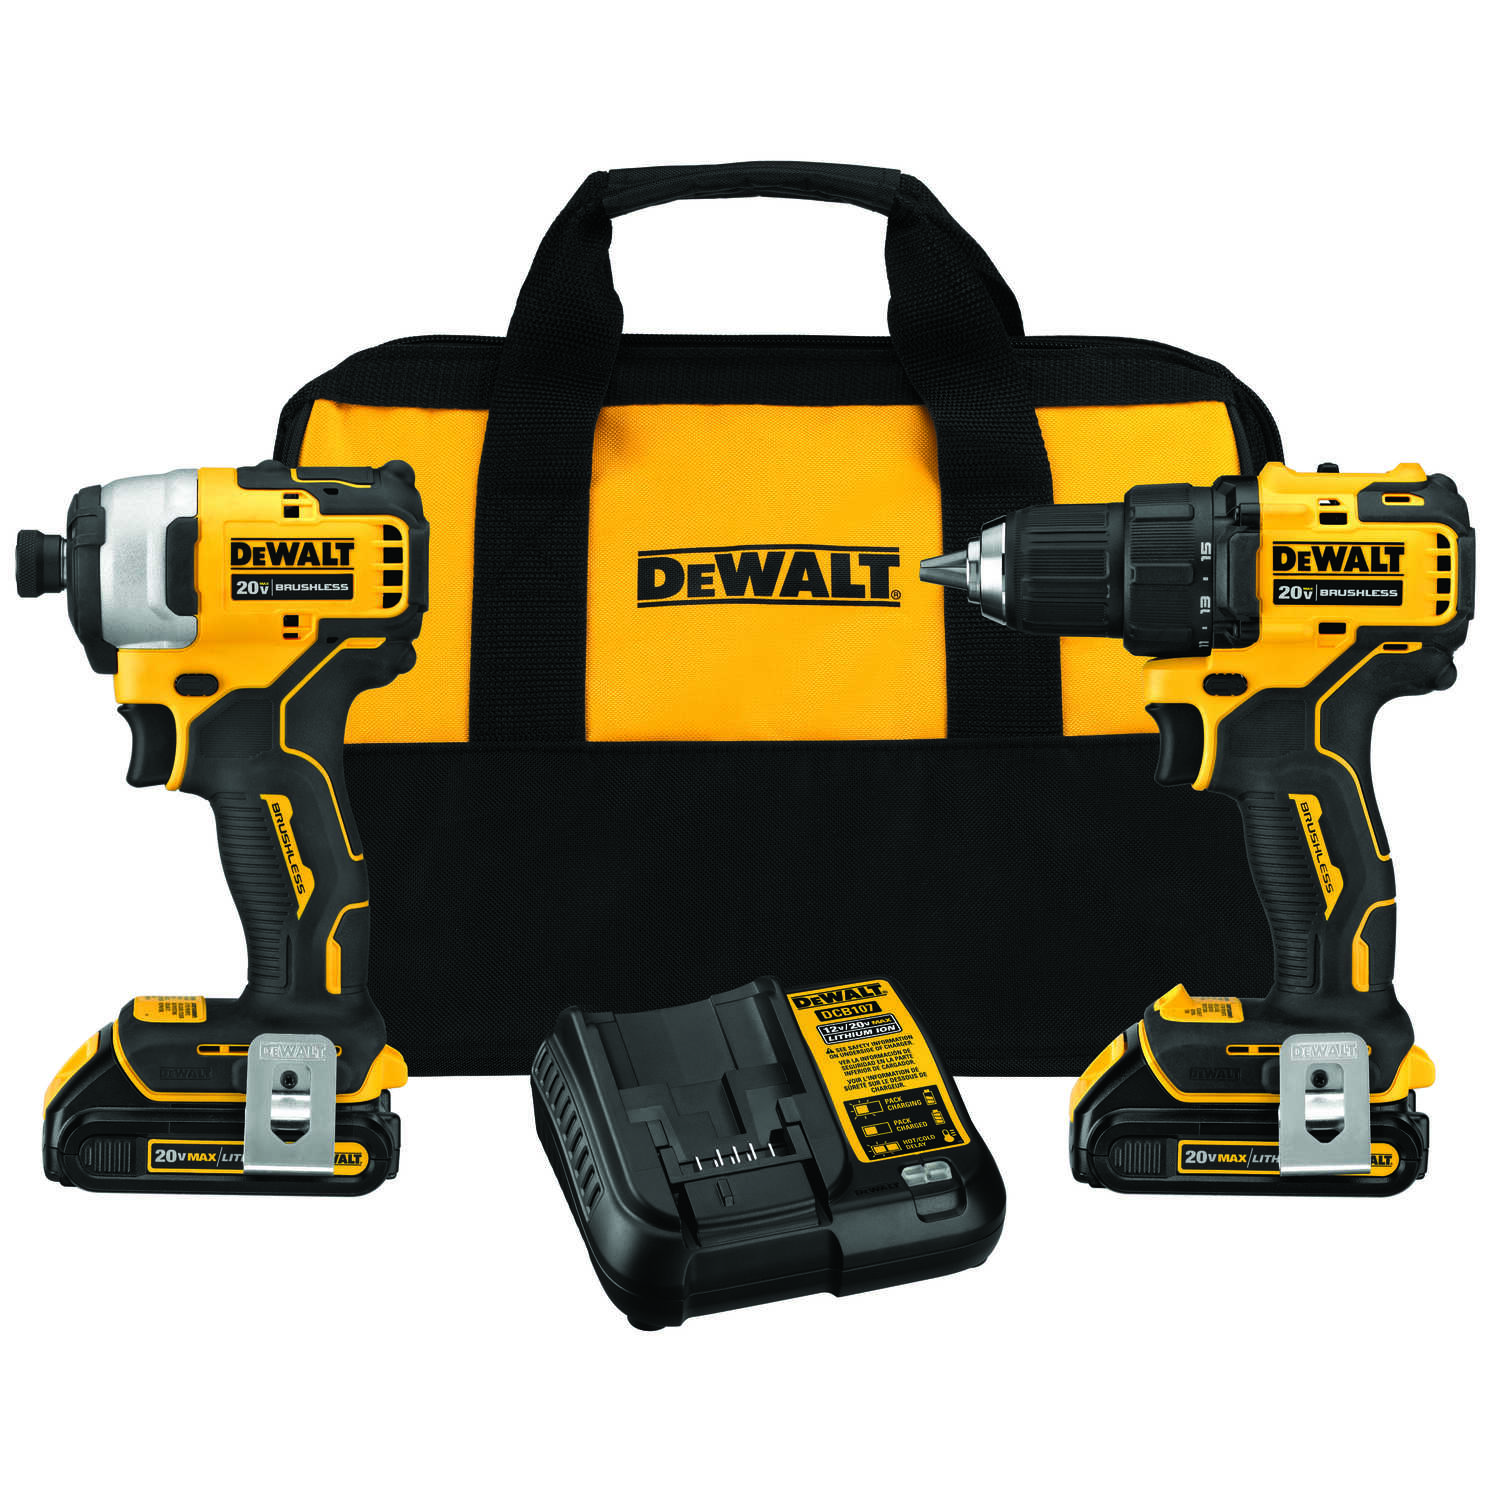 DeWalt  Cordless  Brushless 2 tool Compact Drill and Impact Driver Kit  20 volt